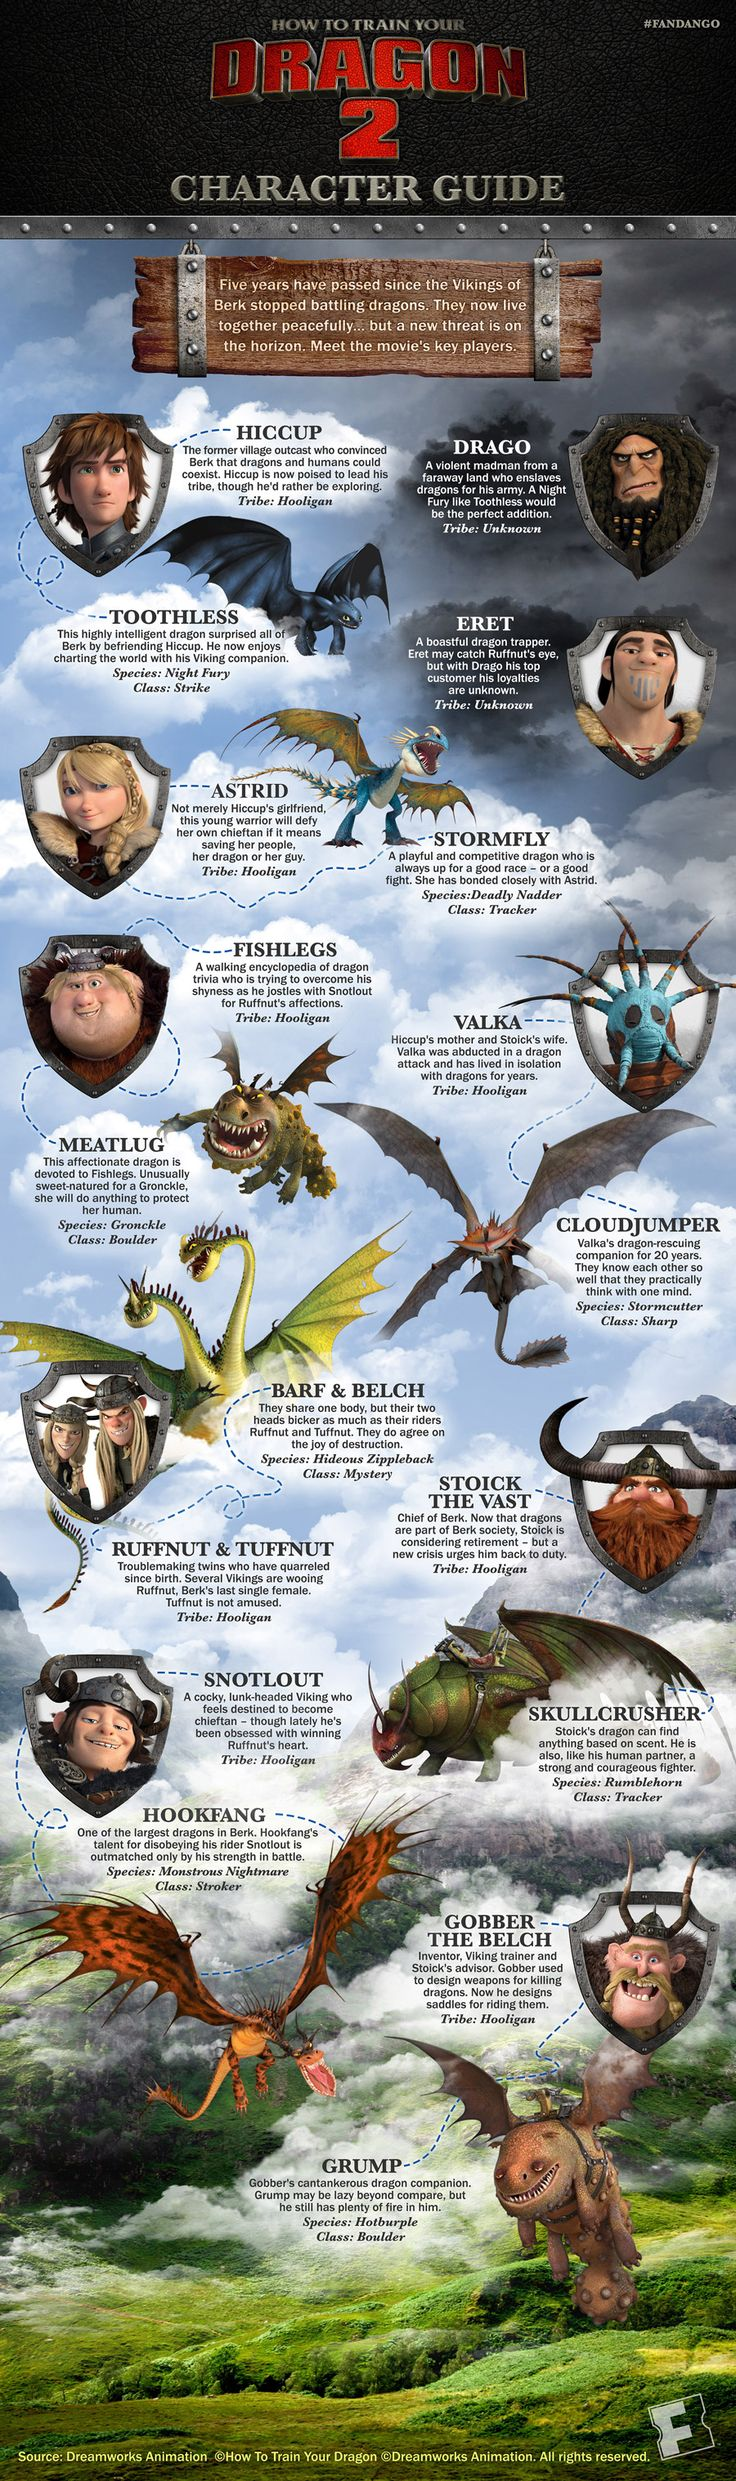 How to Train Your Dragon 2 character guide.